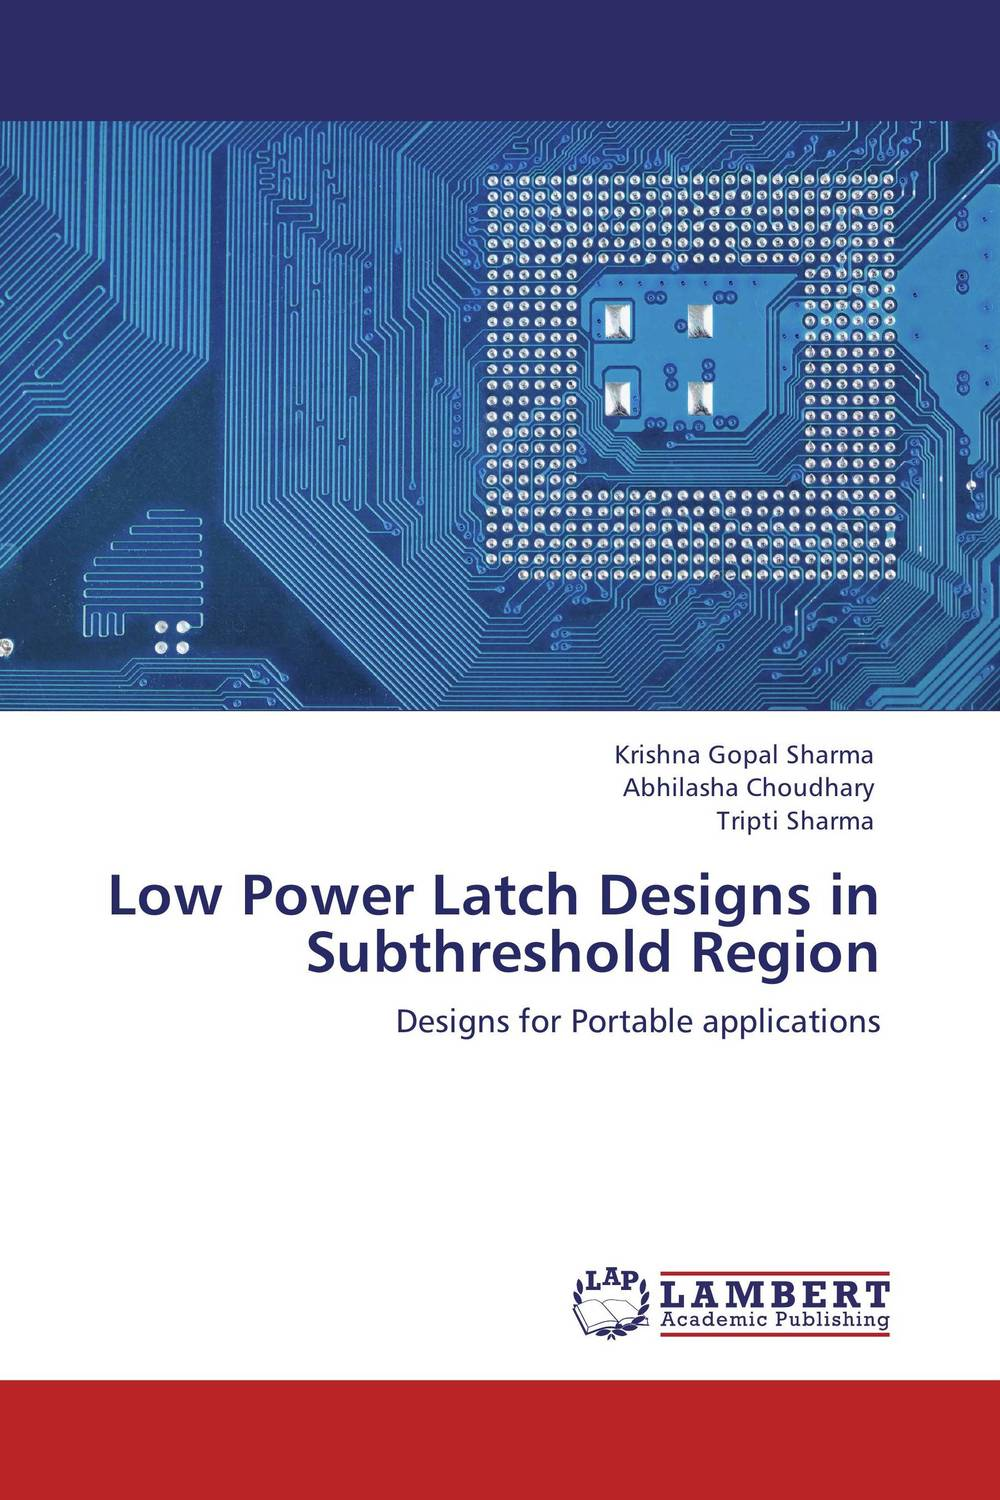 Low Power Latch Designs in Subthreshold Region photovoltaic technology for socially viable product design